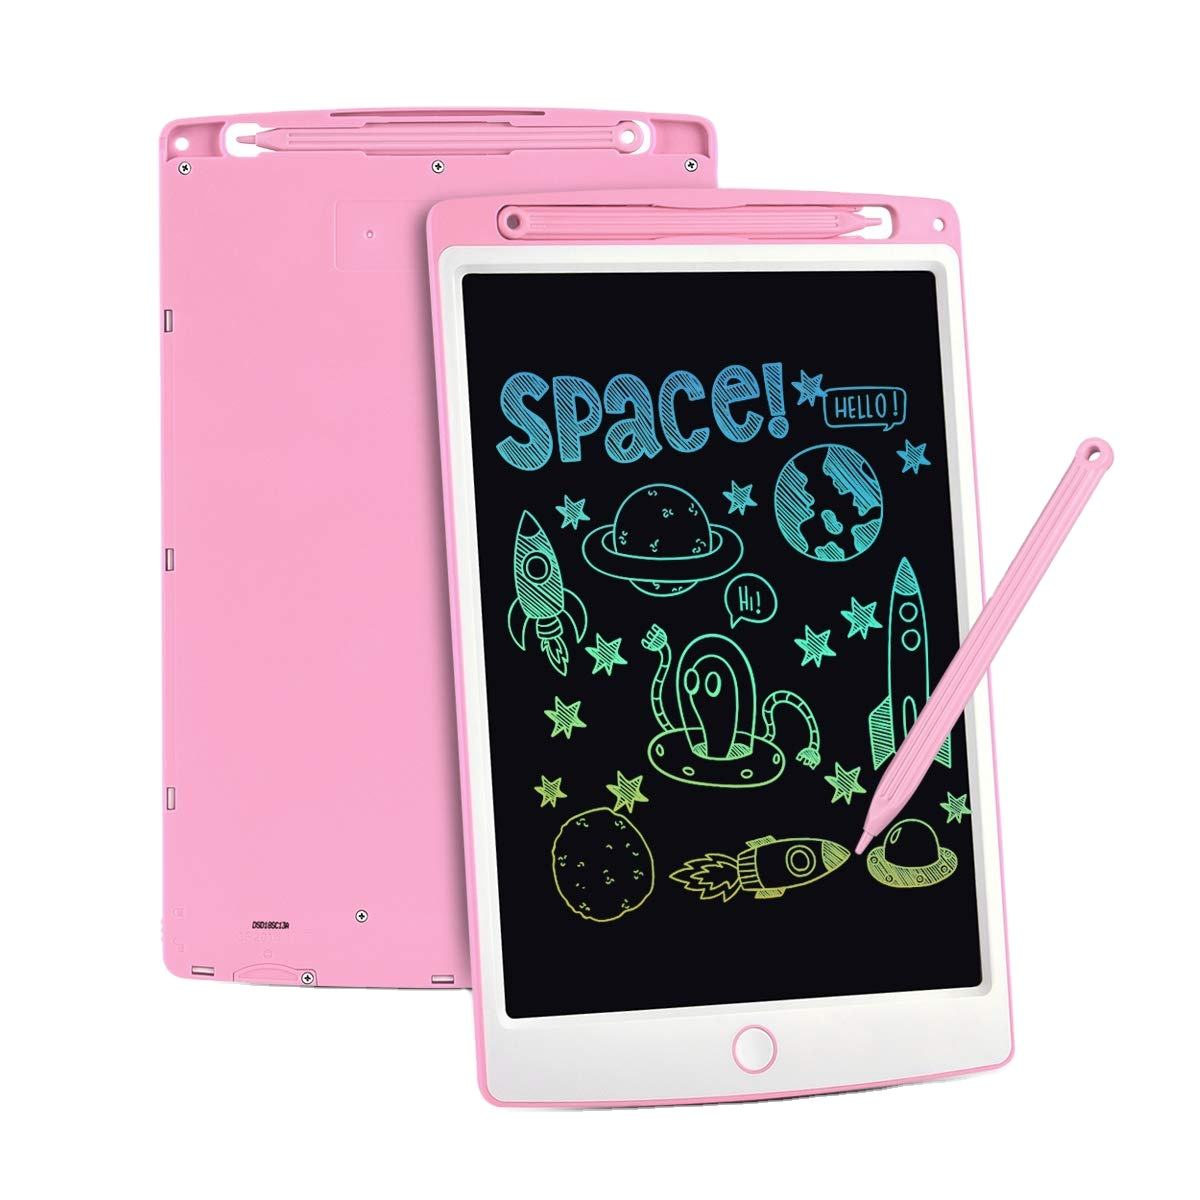 Erasable Drawing Child 8.5inch Lcd Writing Kid E-writer Handwriting Paper Graphic Tablet